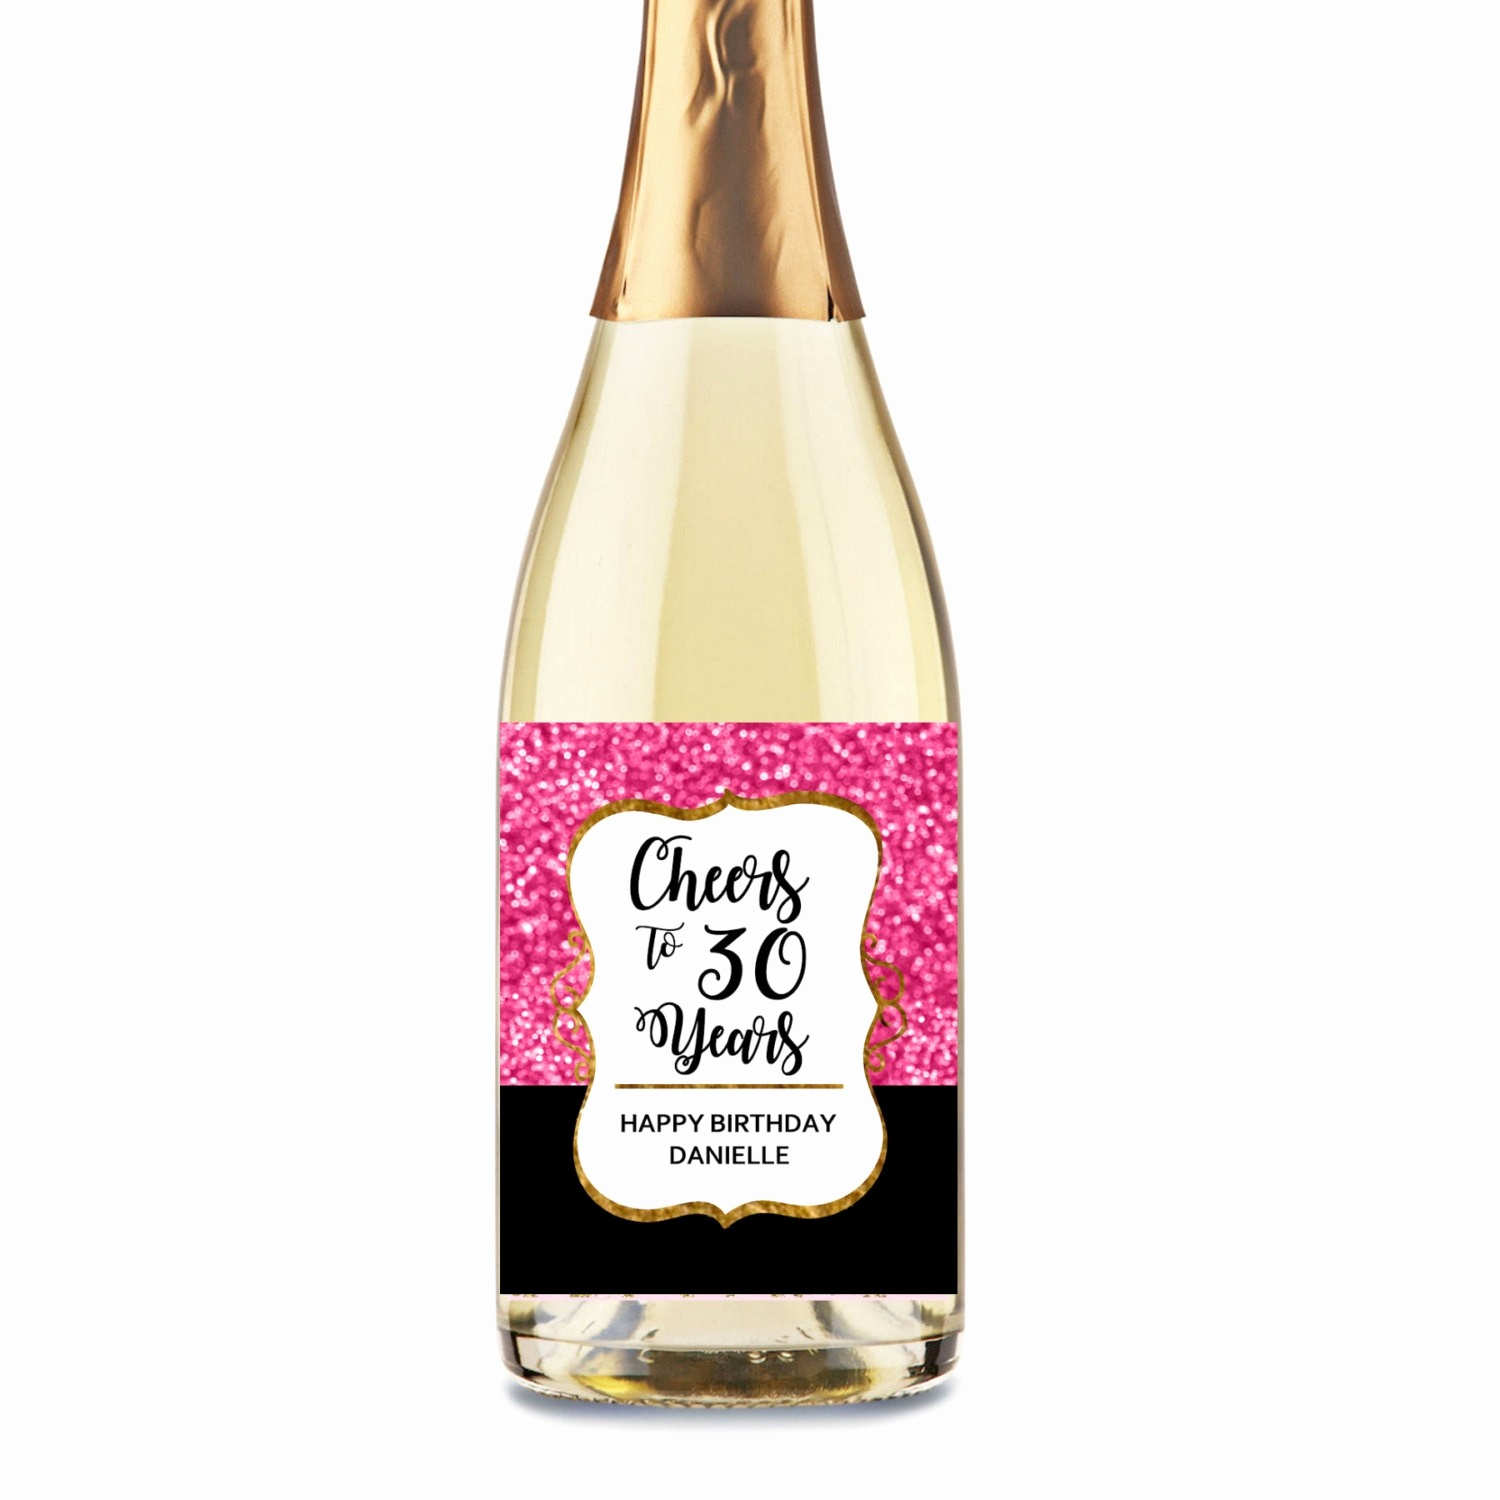 Free Printable Champagne Bottle Labels – Rtrs.online - Free Printable Mini Champagne Bottle Labels